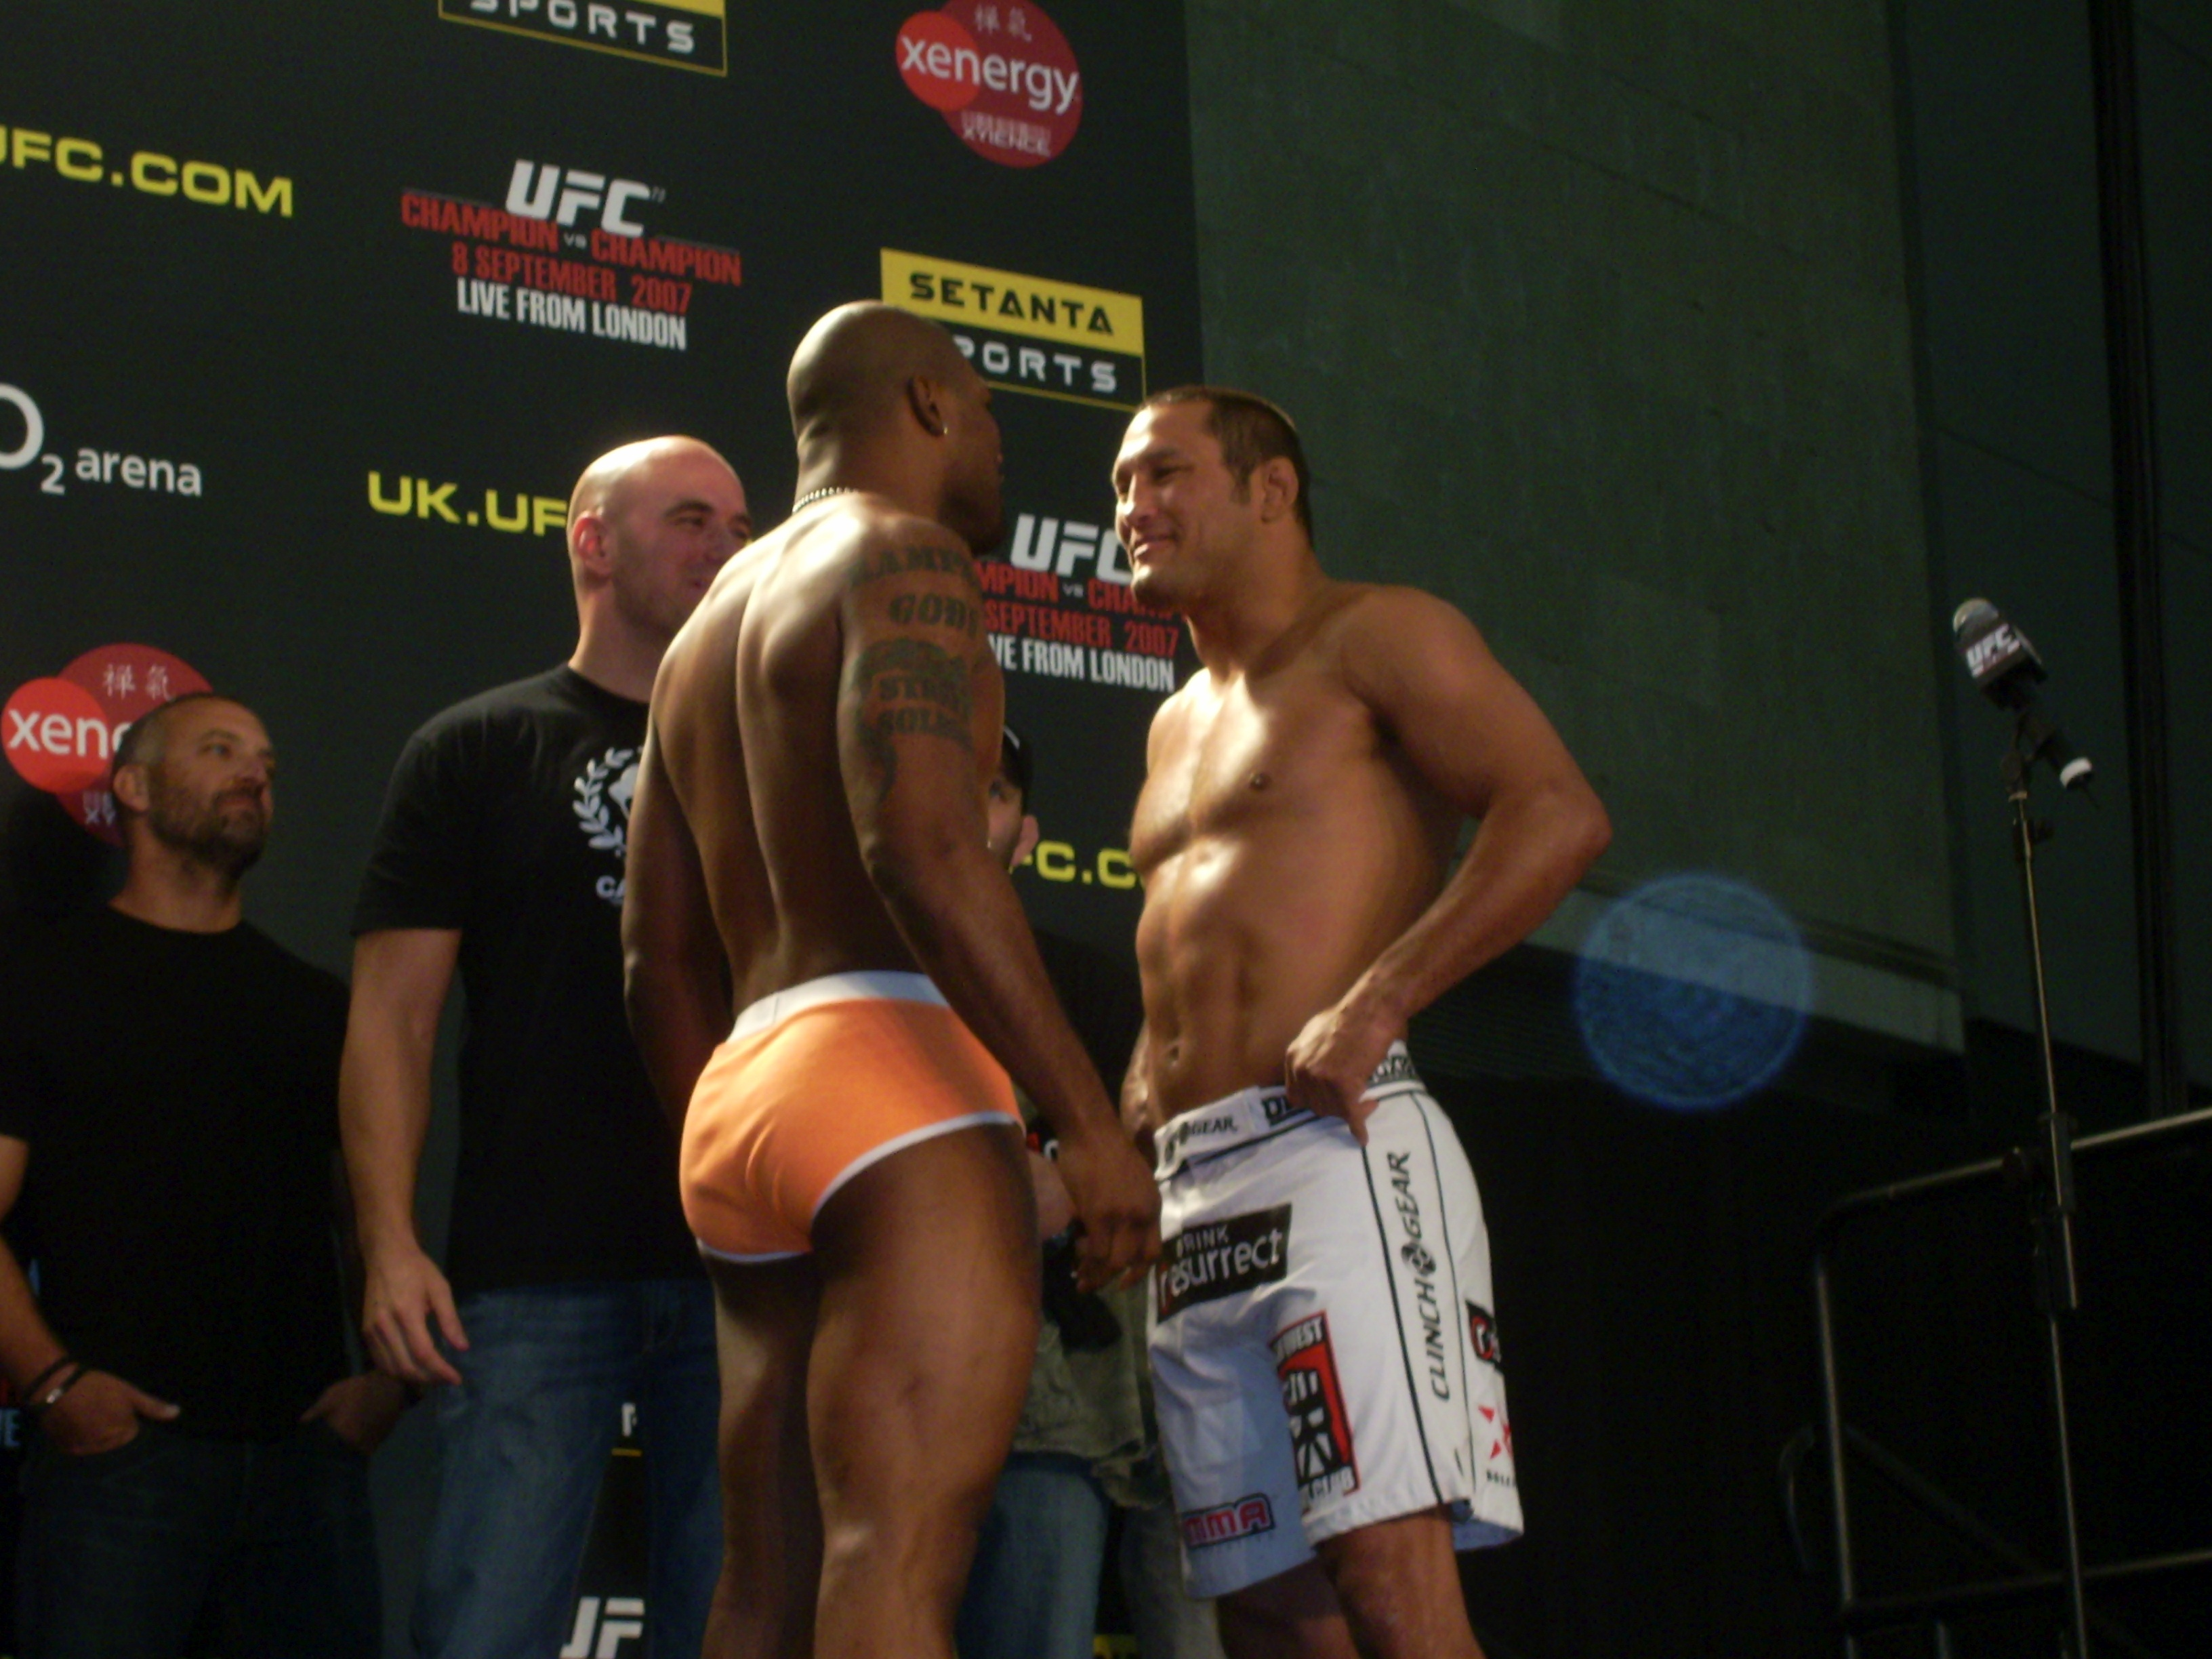 File:UFC 75 weigh-in Henderson vs Jackson face-off.jpg - Wikimedia Commons